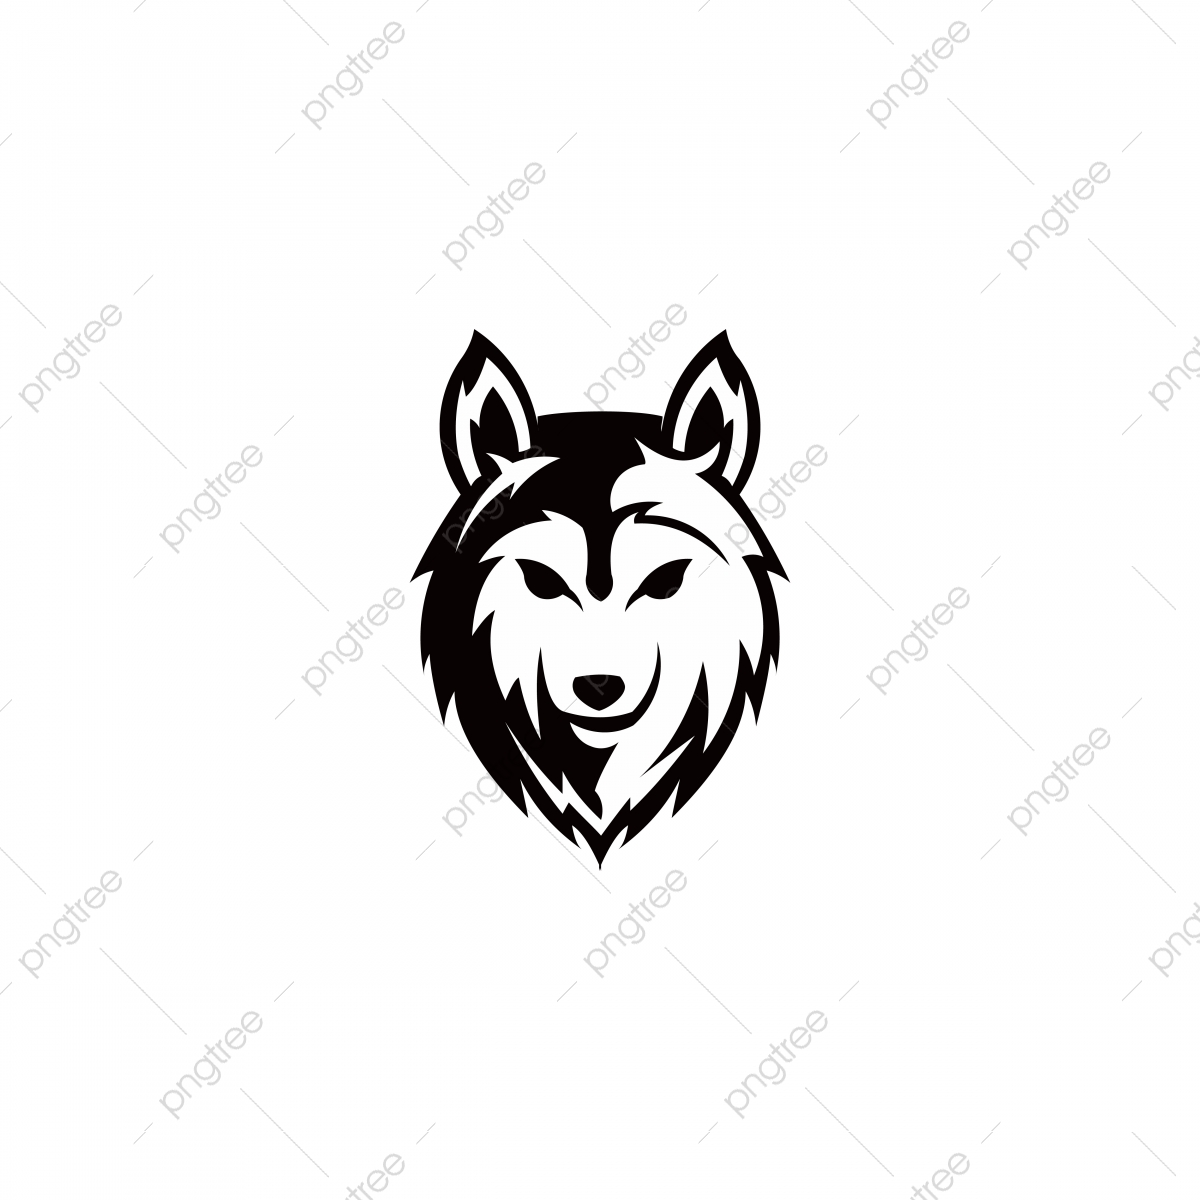 Wolf clipart file. Cartoon head